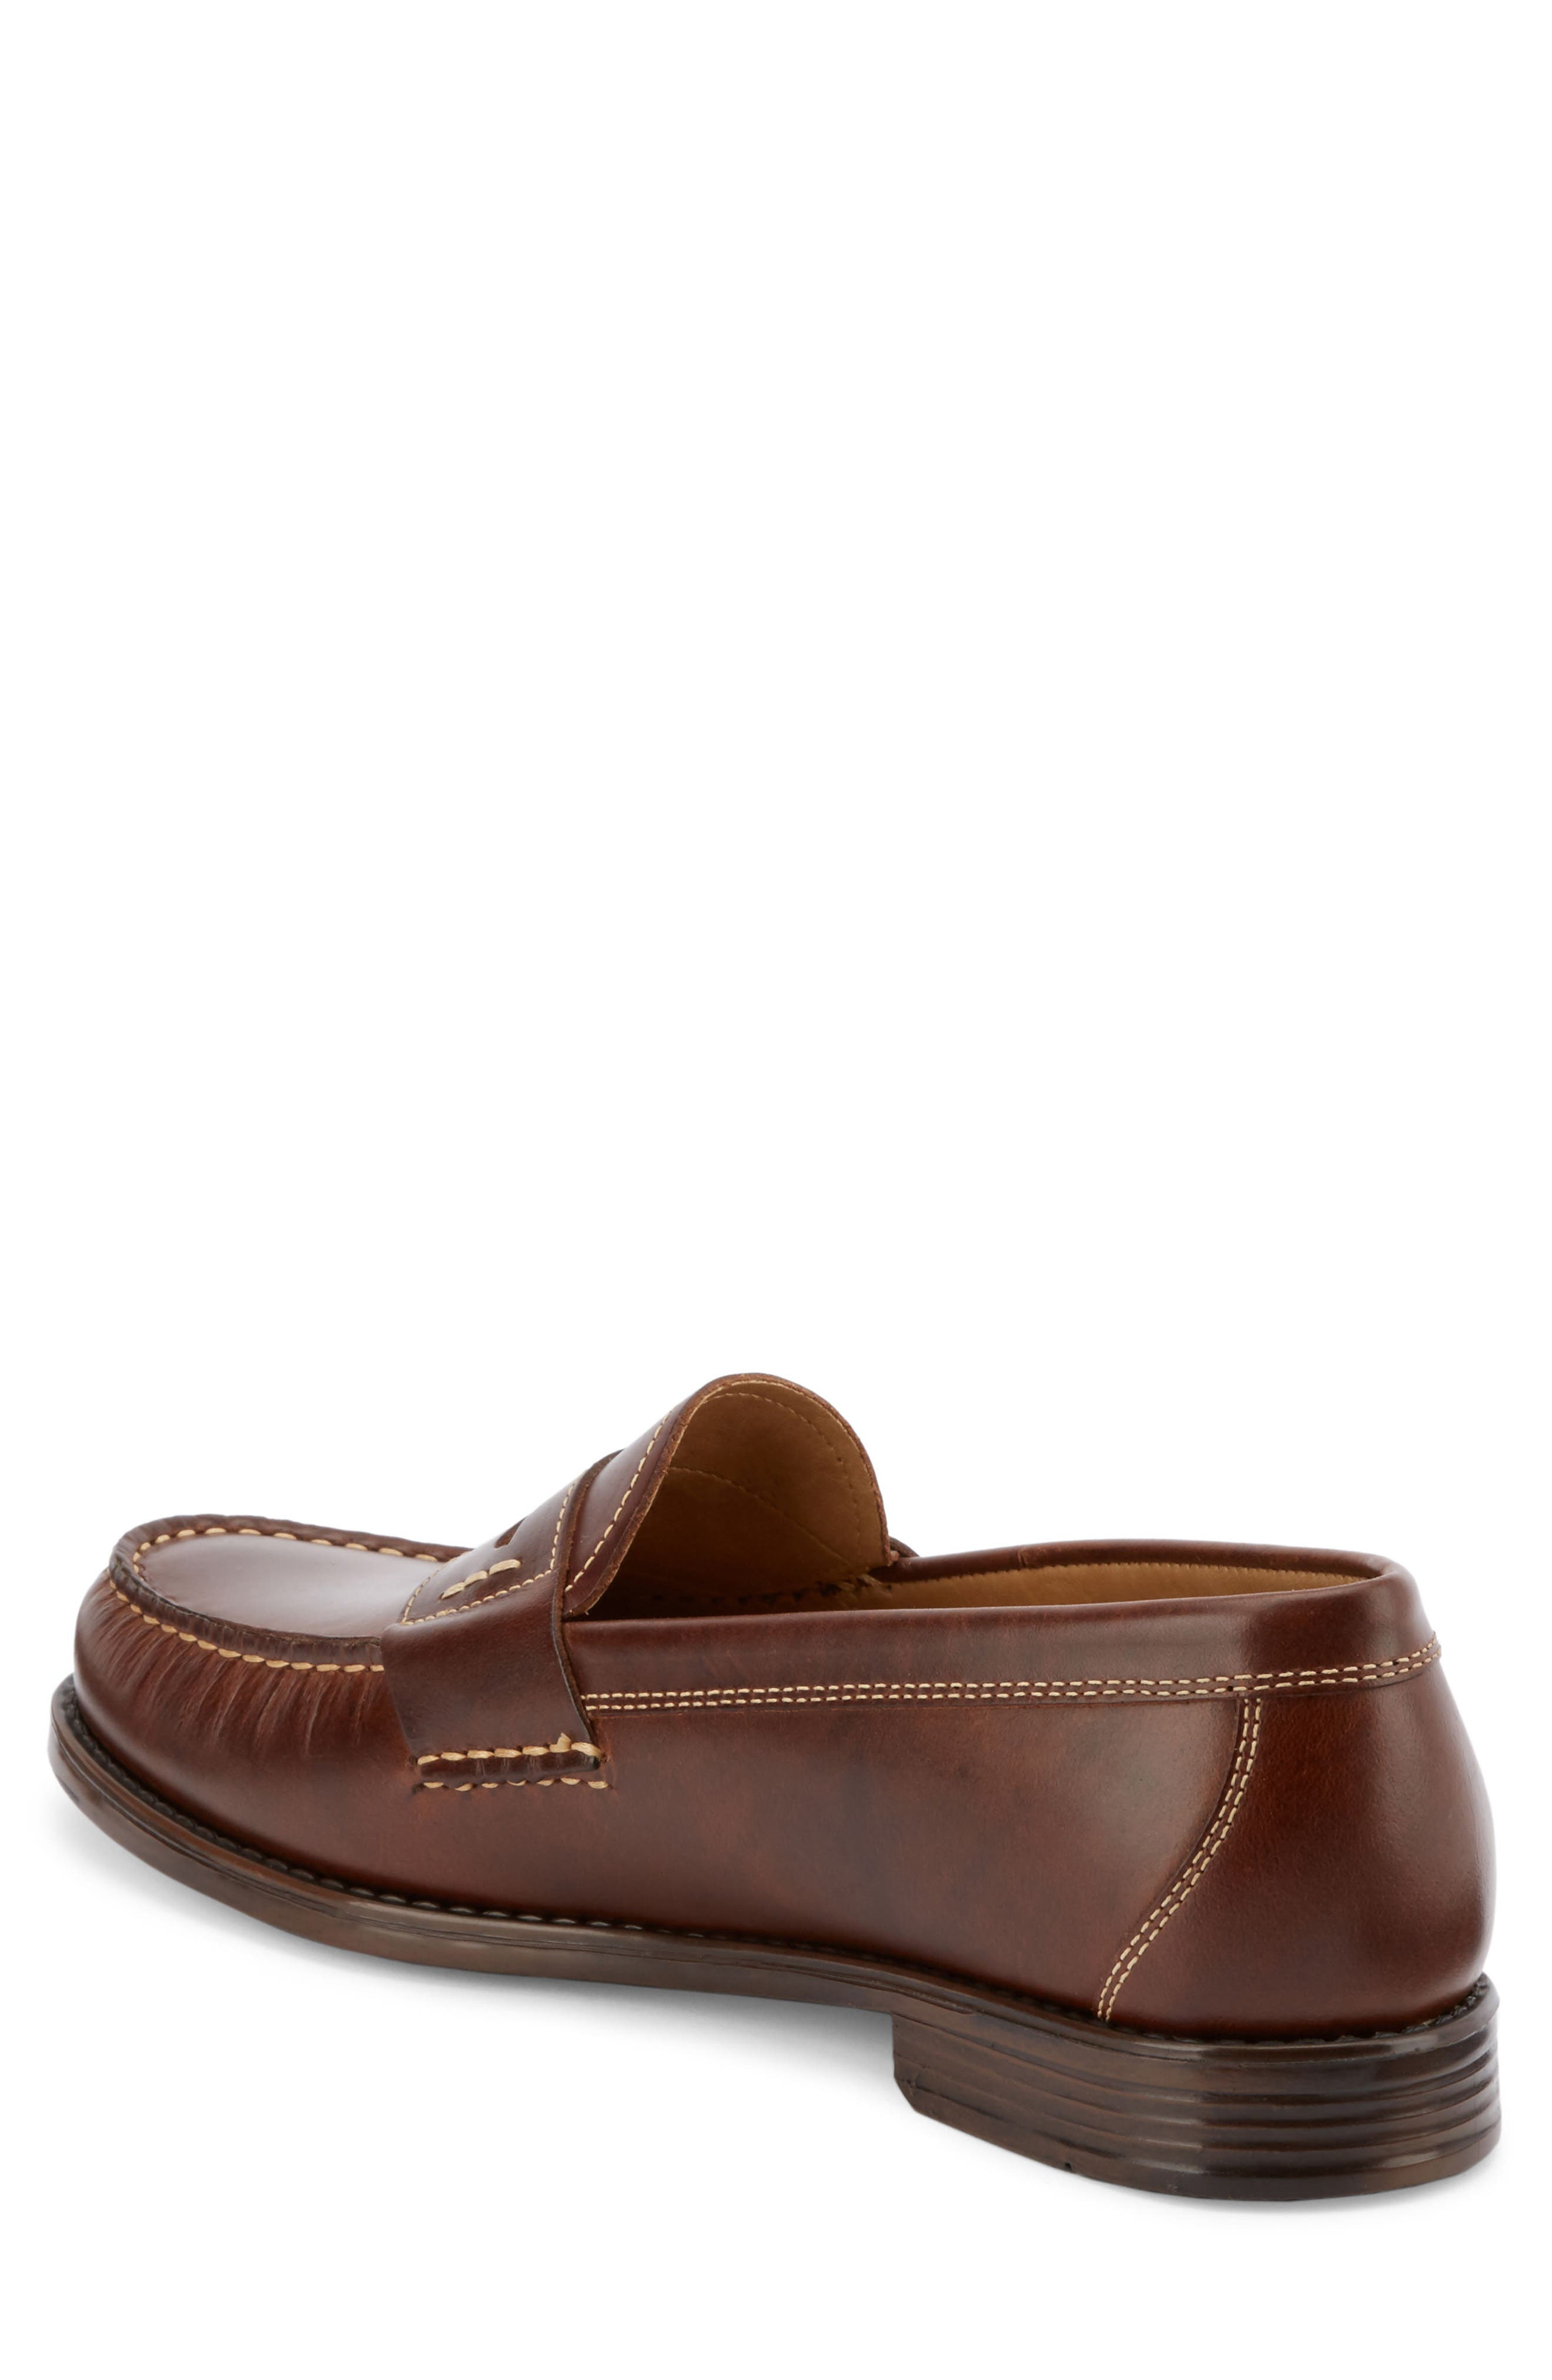 Wagner Penny Loafer,                             Alternate thumbnail 2, color,                             DARK BROWN LEATHER